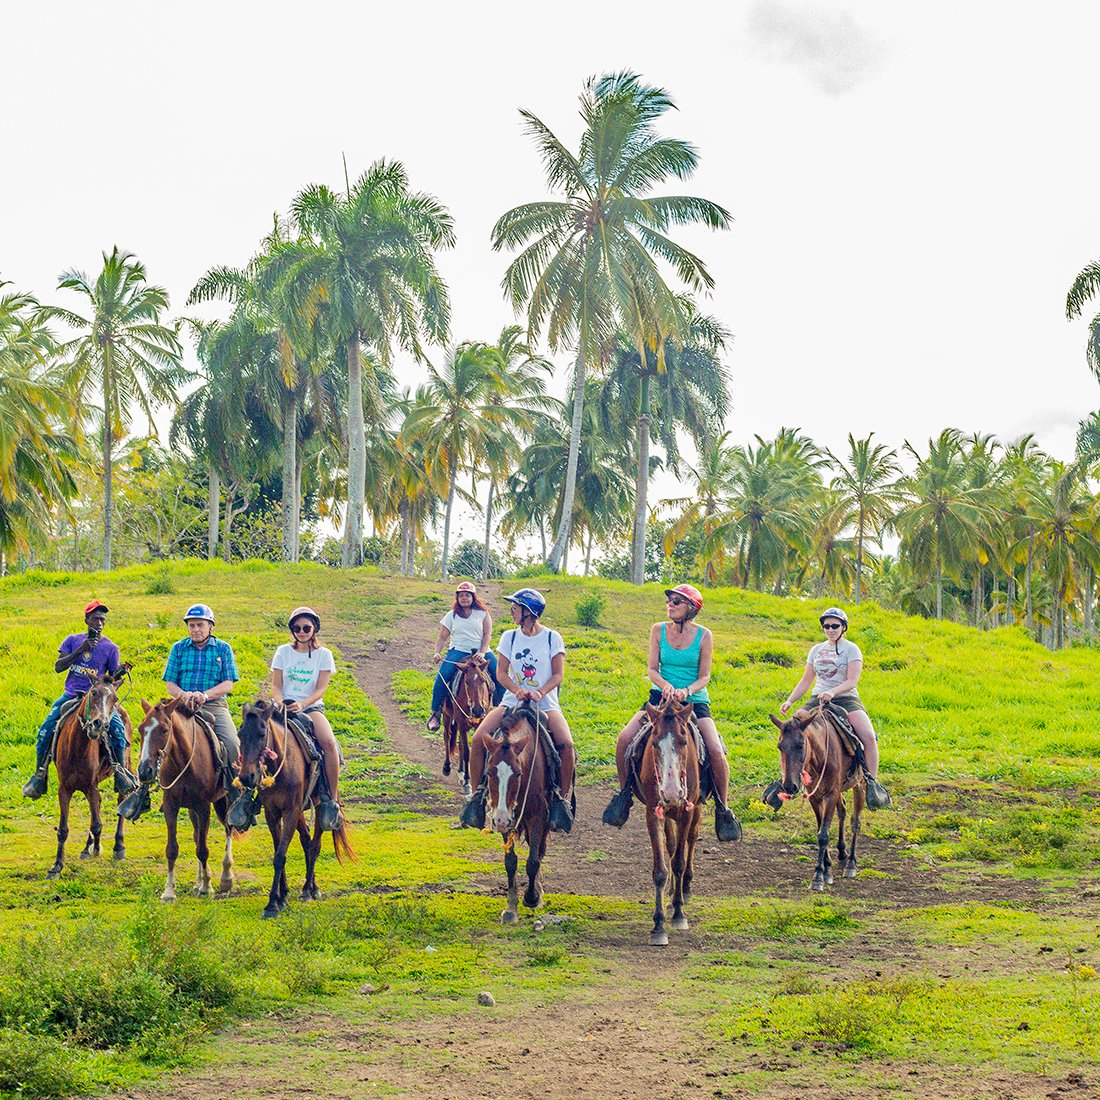 Dominican Horse Riding Tour in Punta Cana